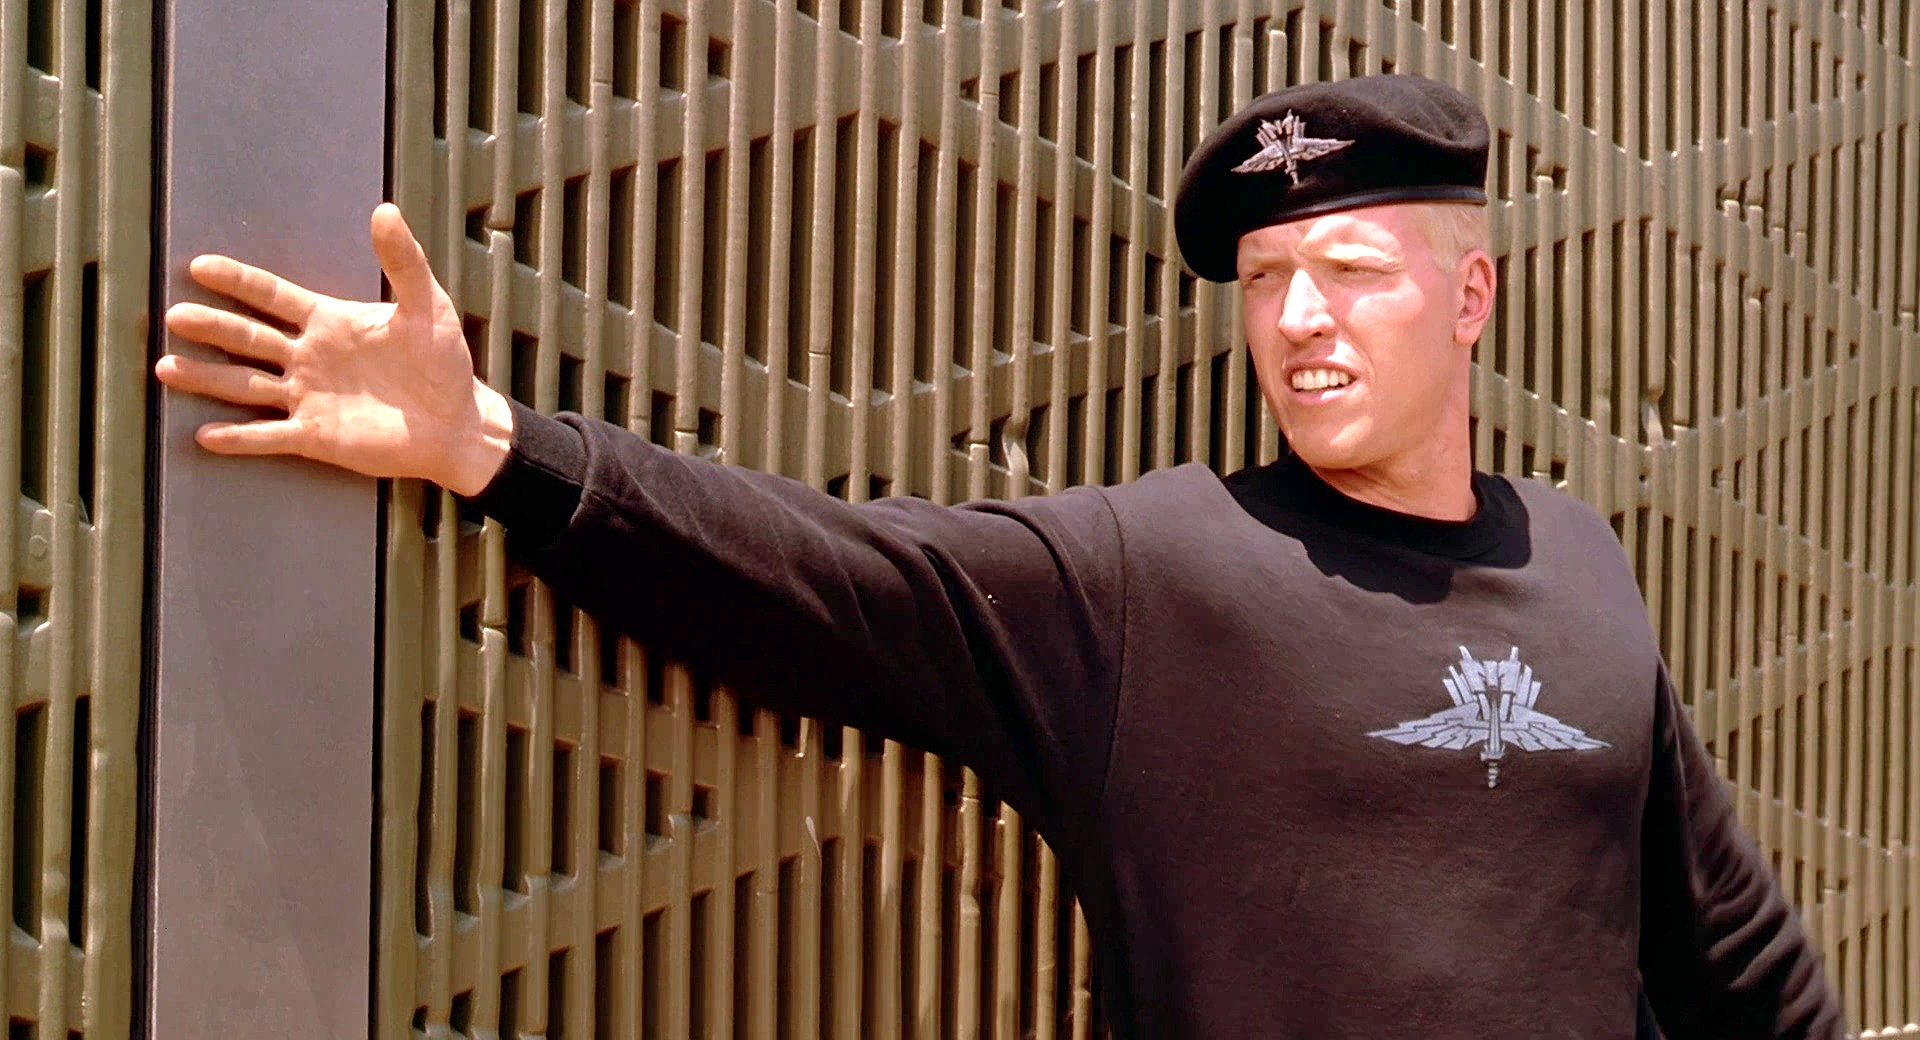 Jake Busey in Starship Troopers.